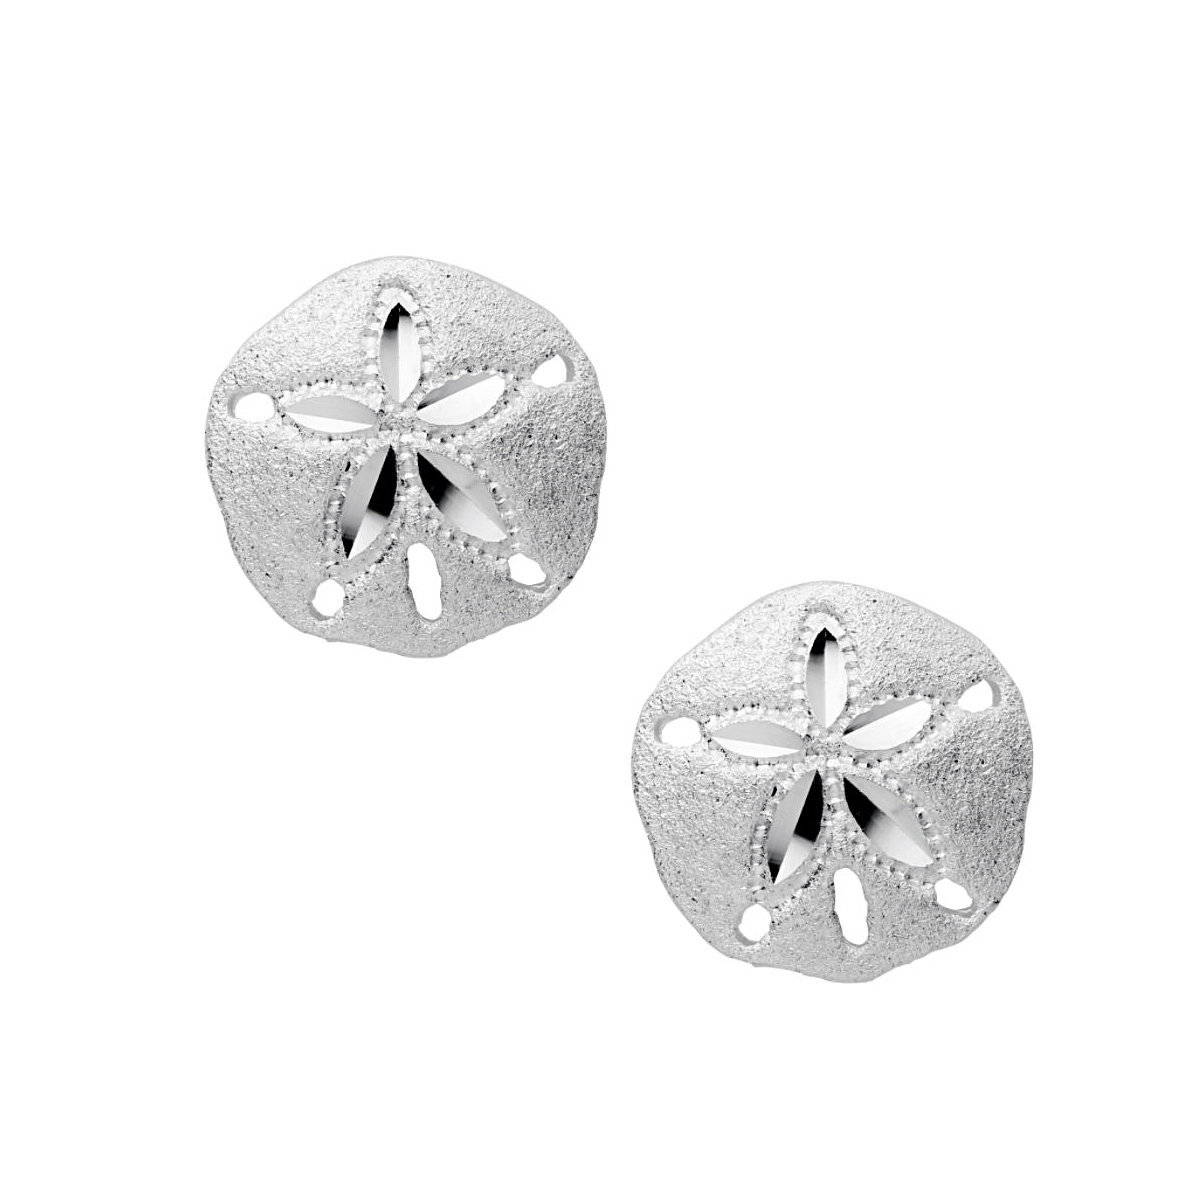 Sterling silver Small Sand Dollar Stud Earrings